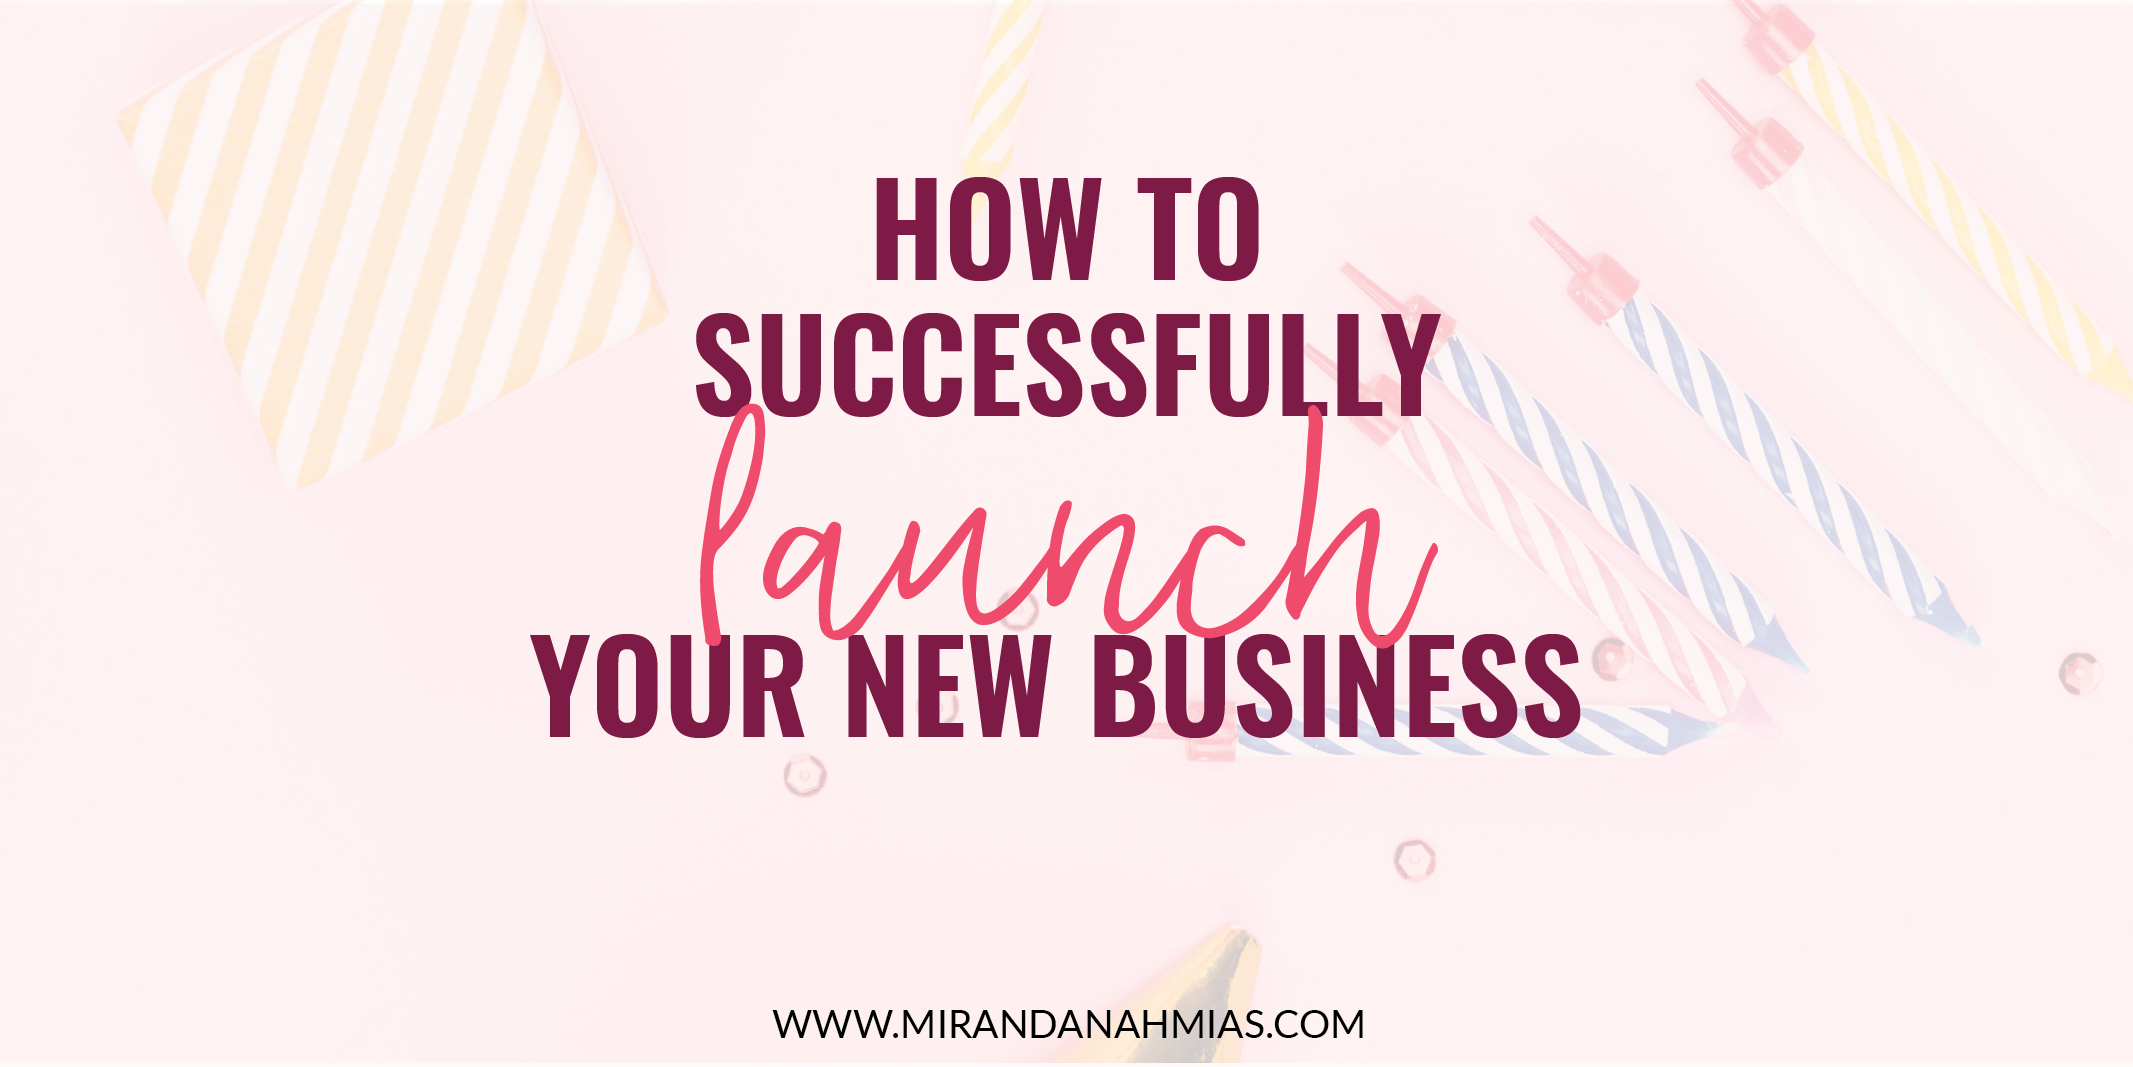 How To Successfully Launch Your New Business